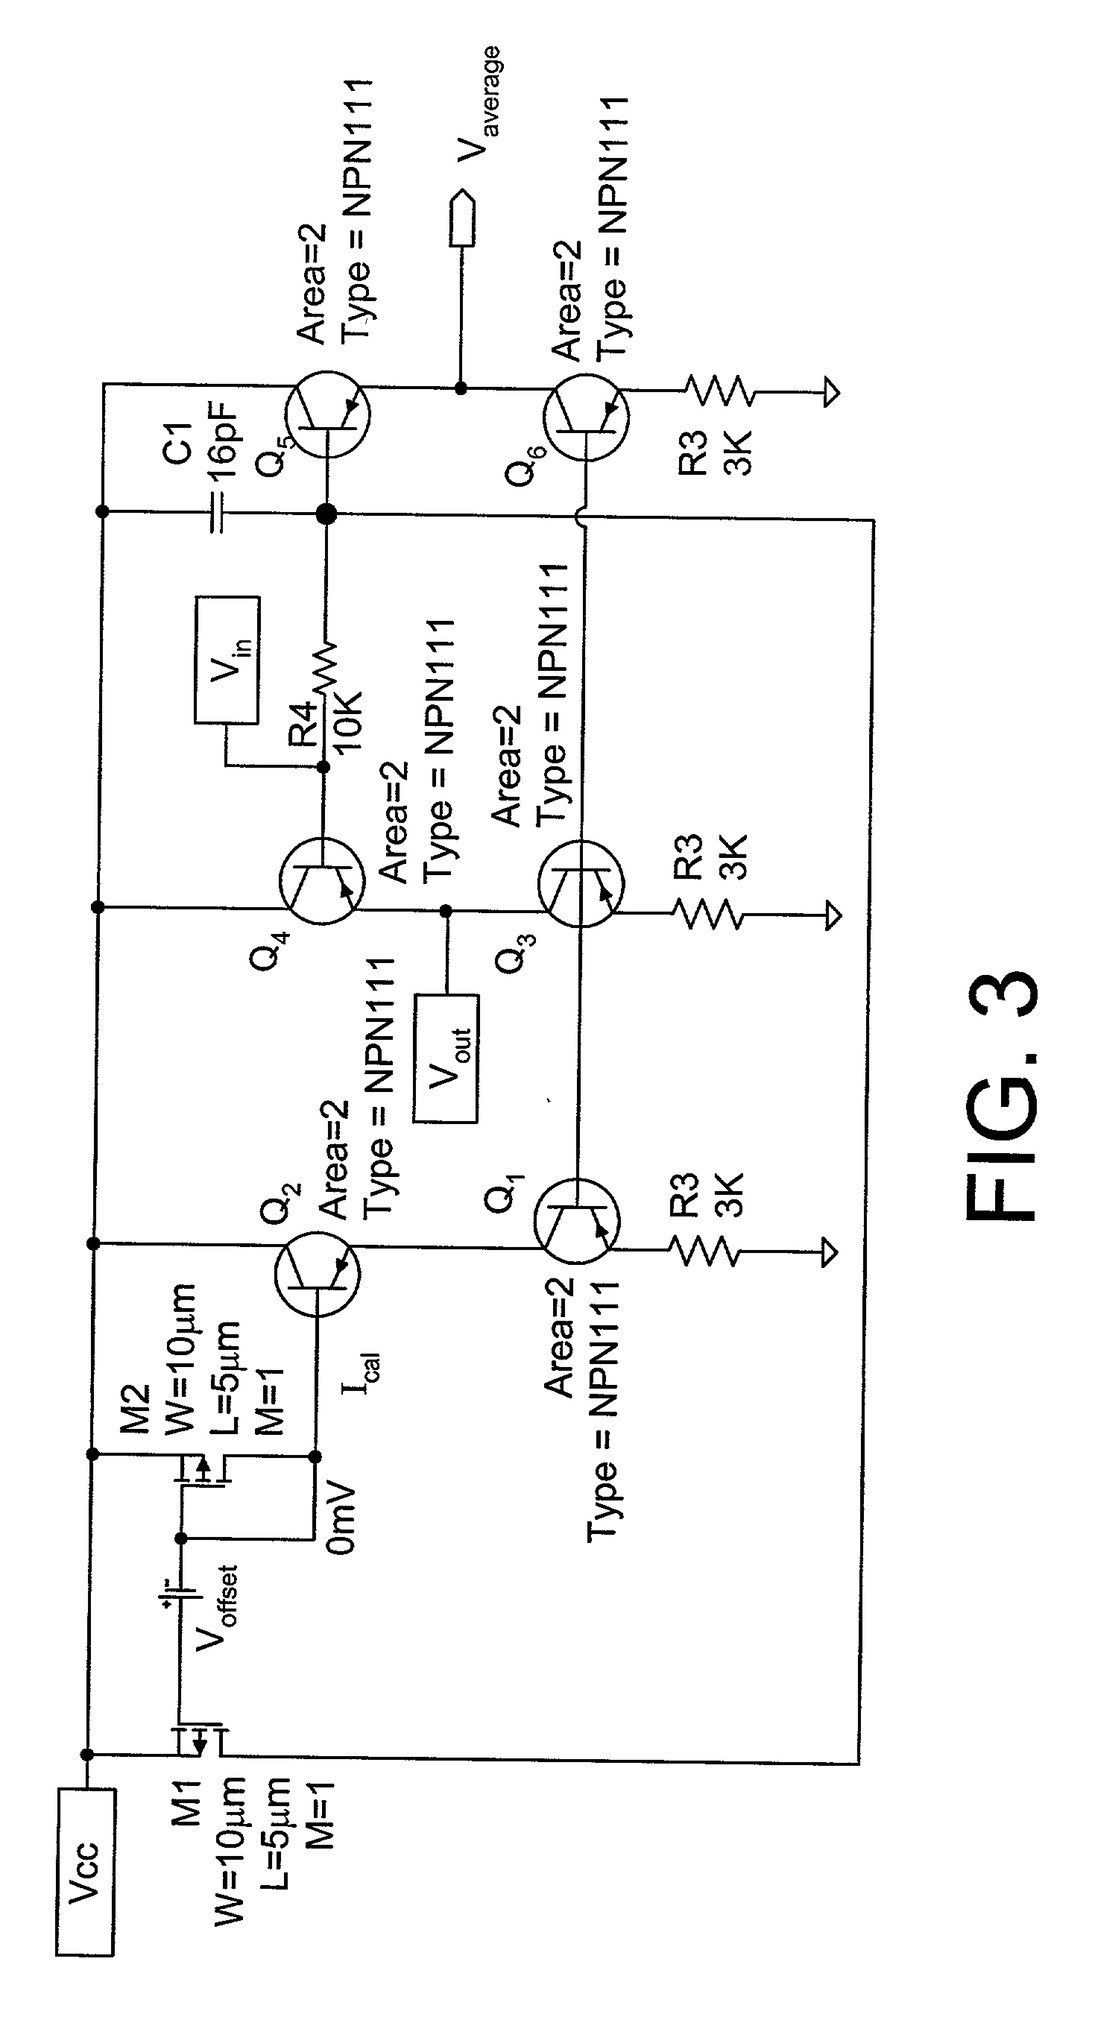 Solar garden lights circuit diagram wiring diagram image wiring diagram for solar garden lights new wiring diagram 12v garden lights fresh solar light charging asfbconference2016 Gallery